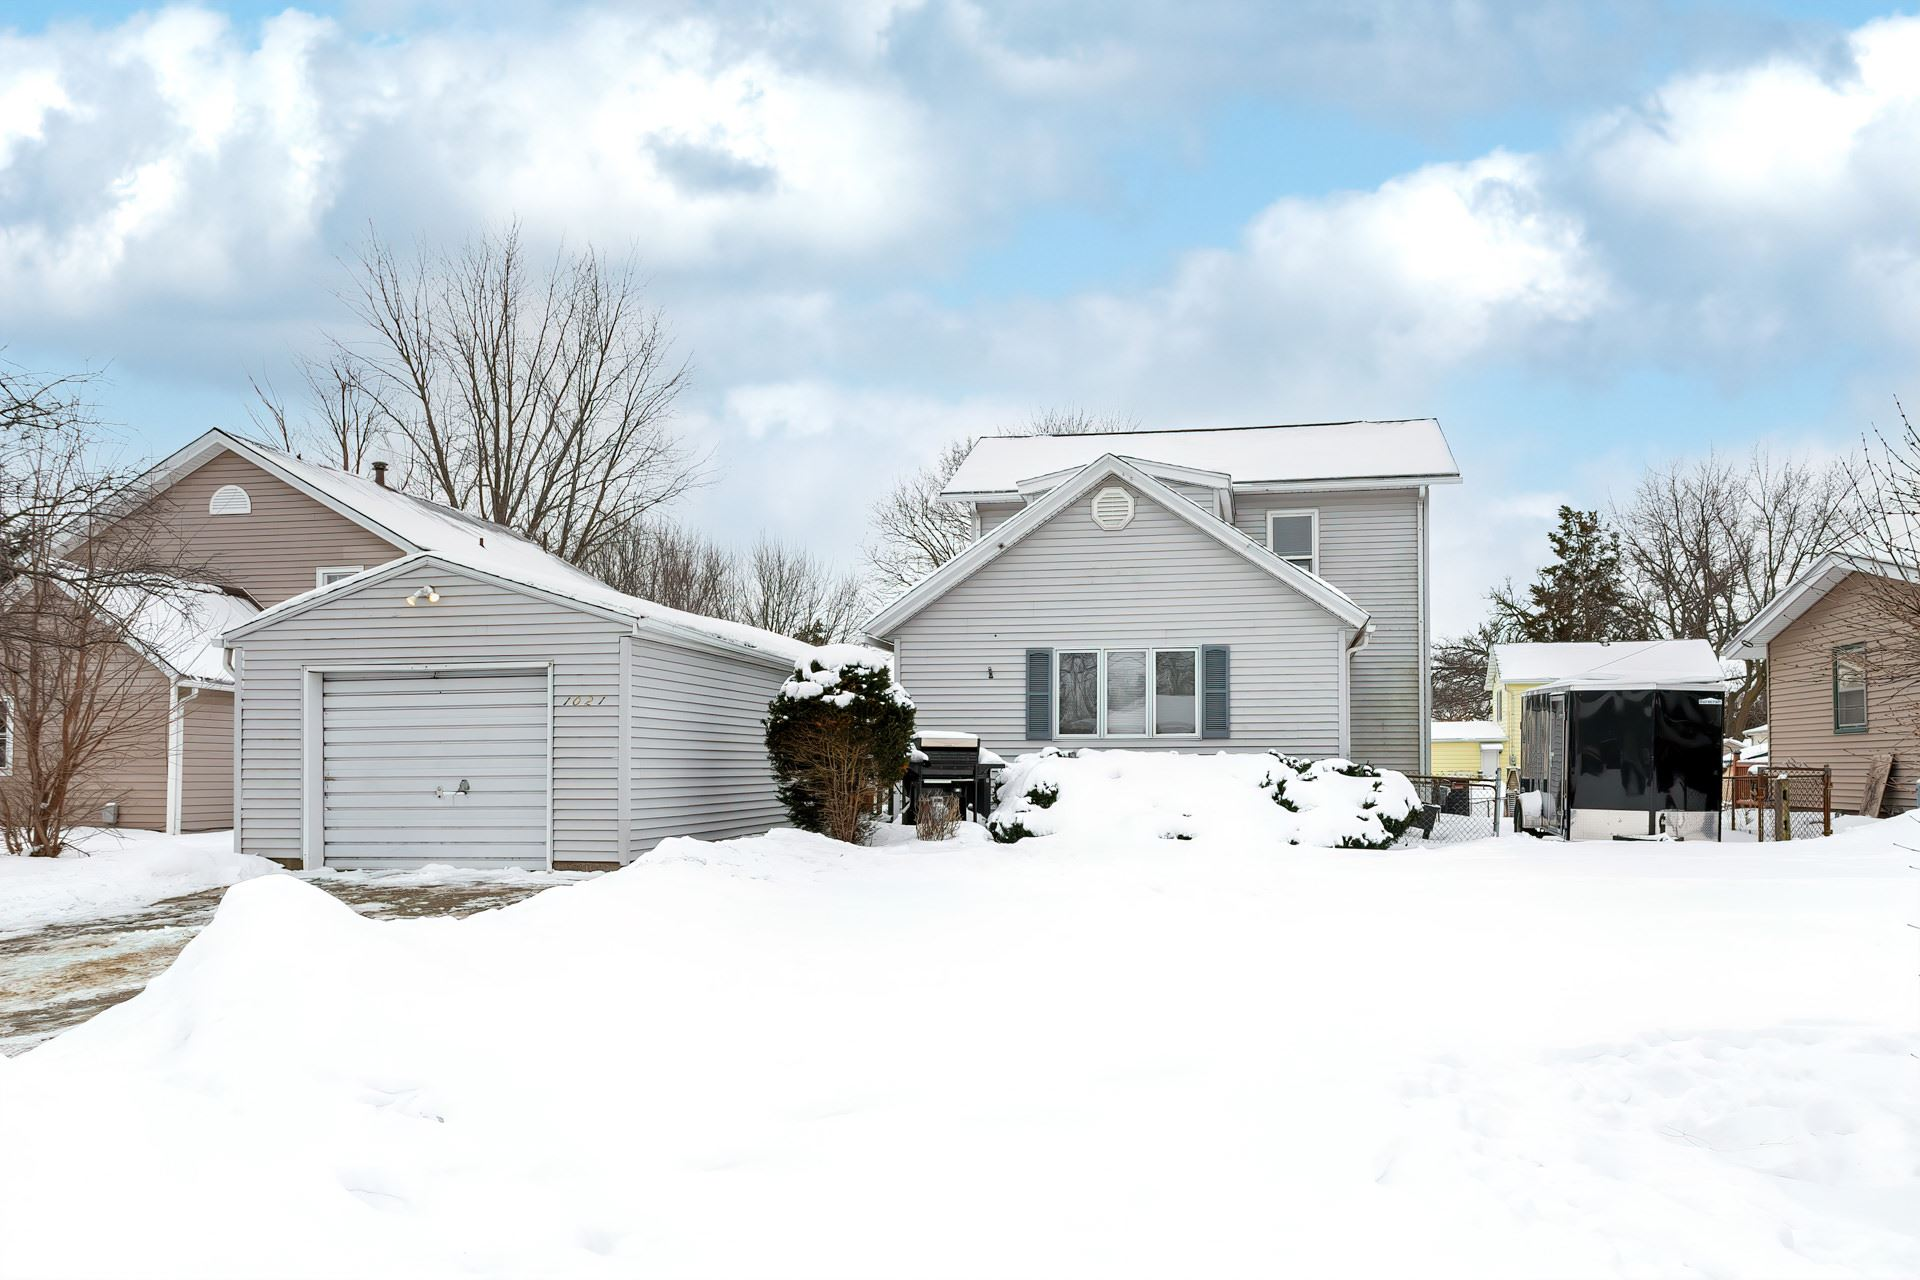 1021 CLIMER Property Photo - Muscatine, IA real estate listing